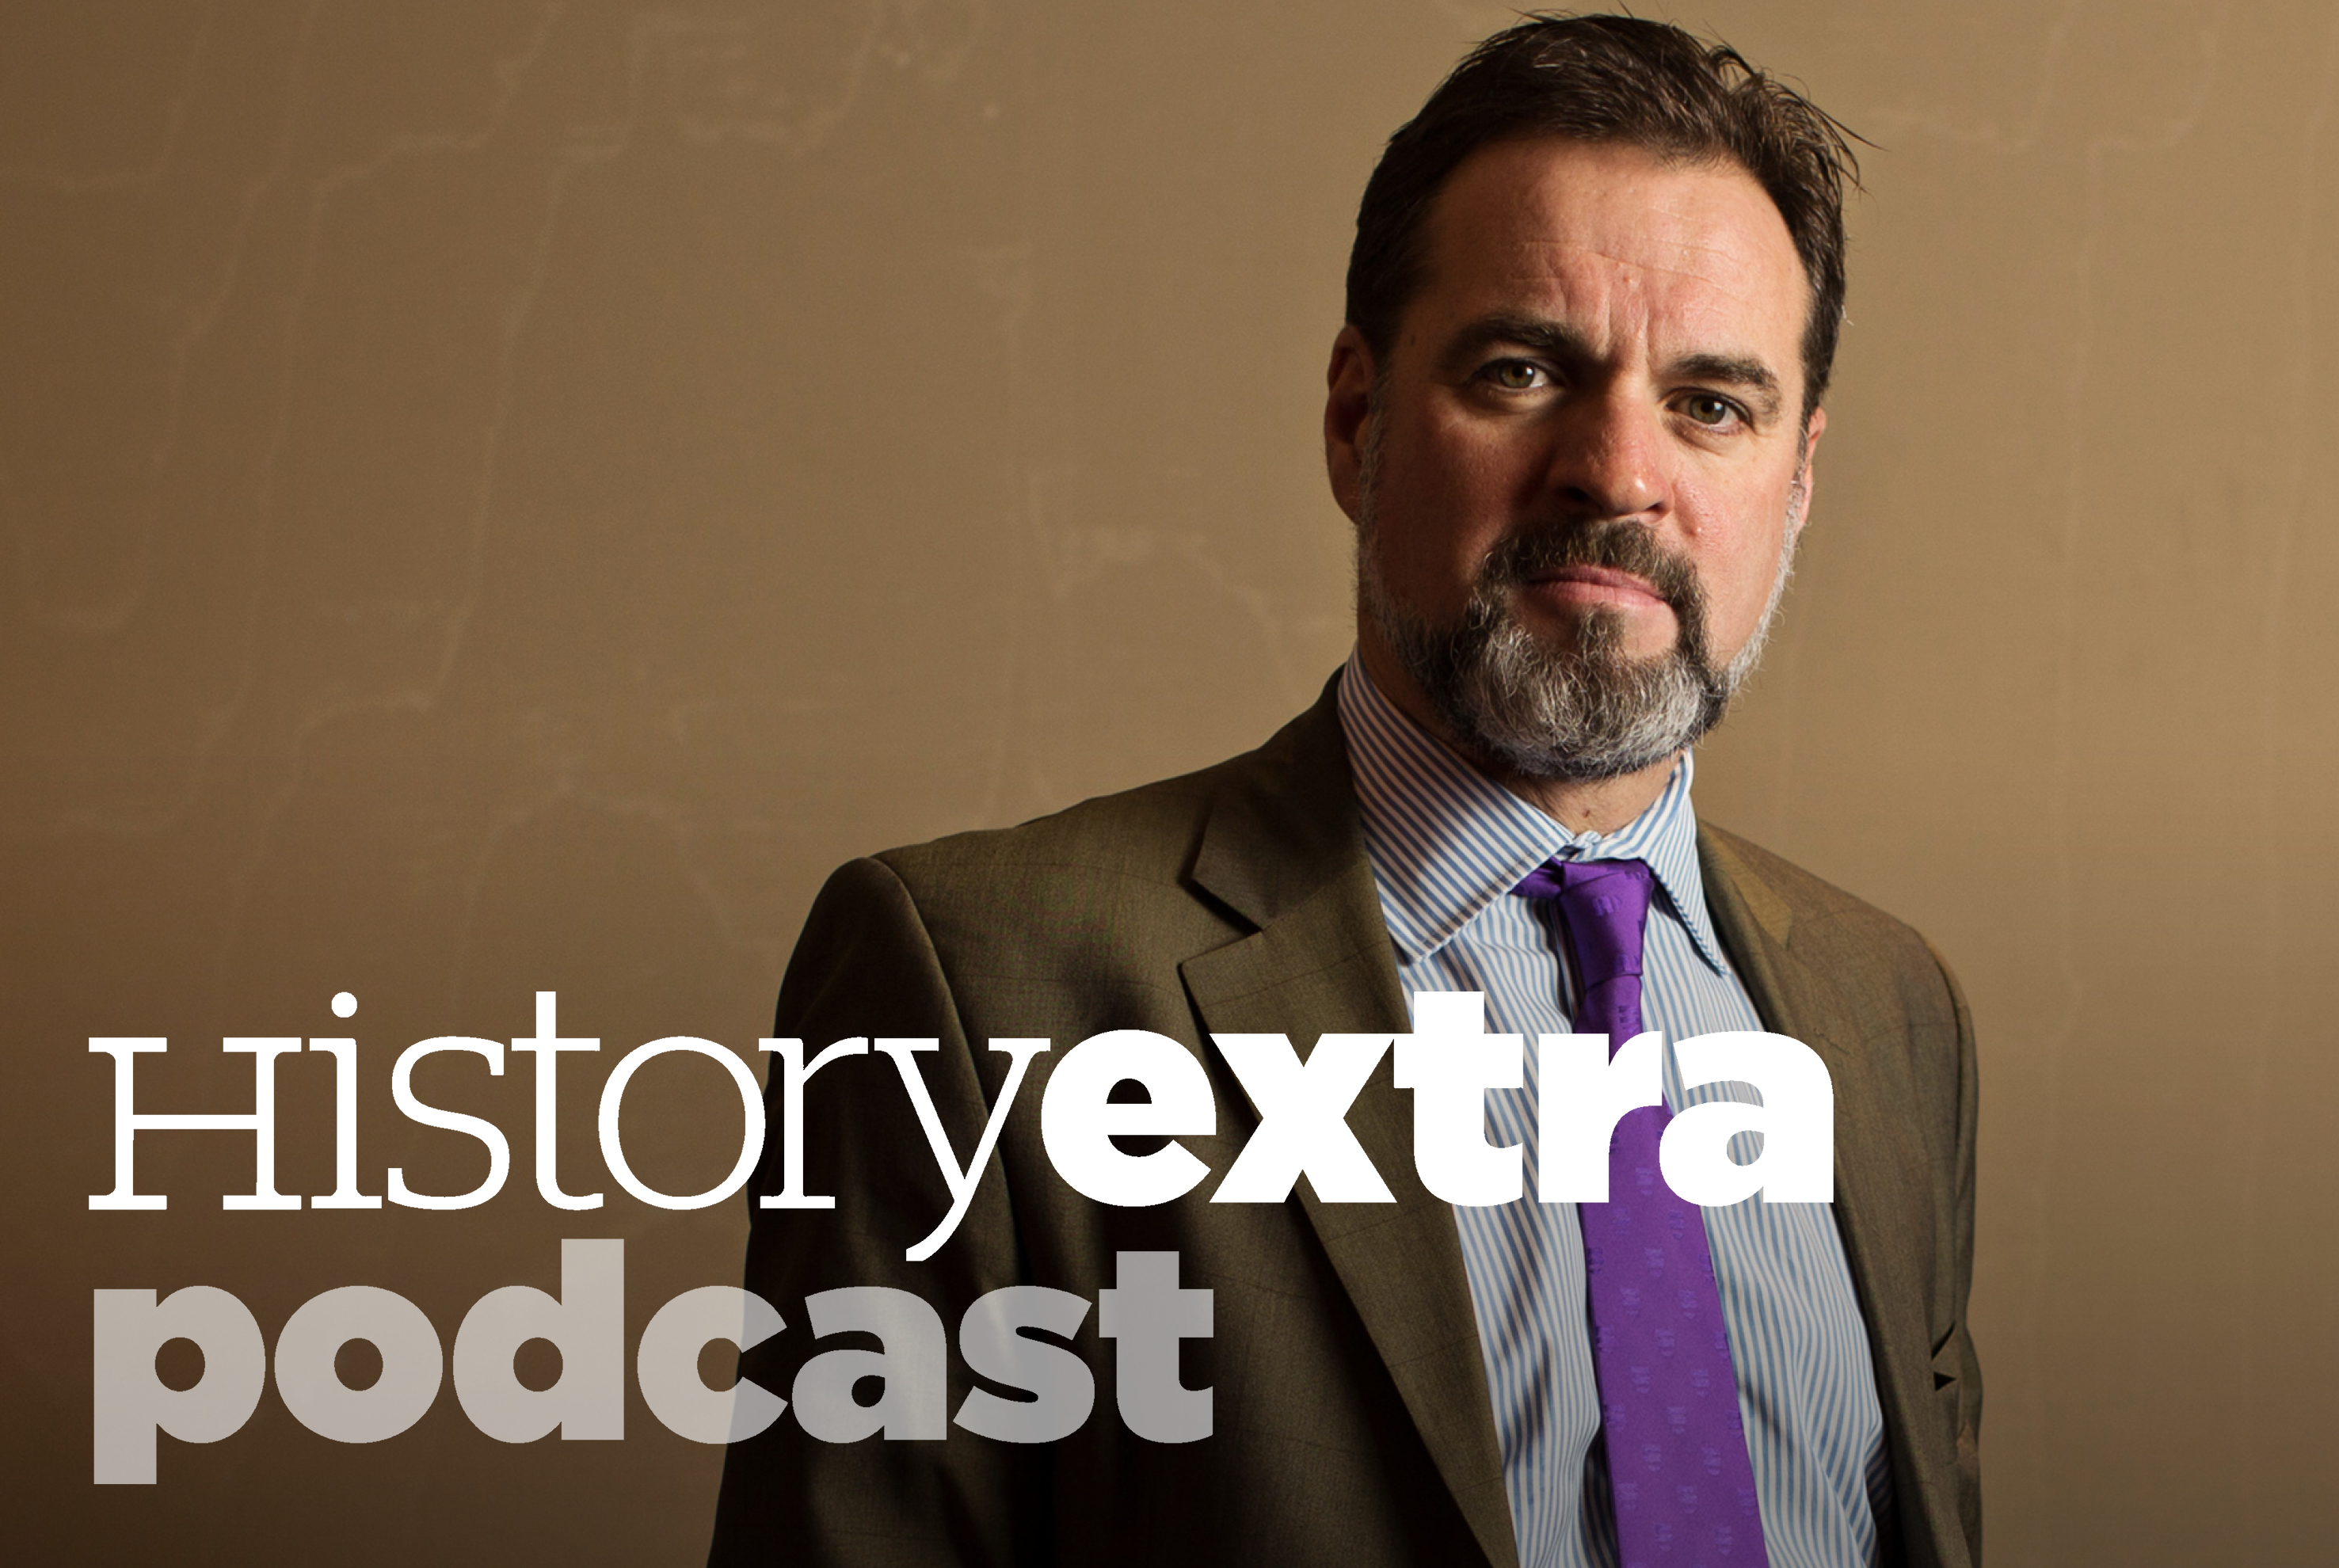 Podcast-Website-large-Niall-Ferguson-3a23d97